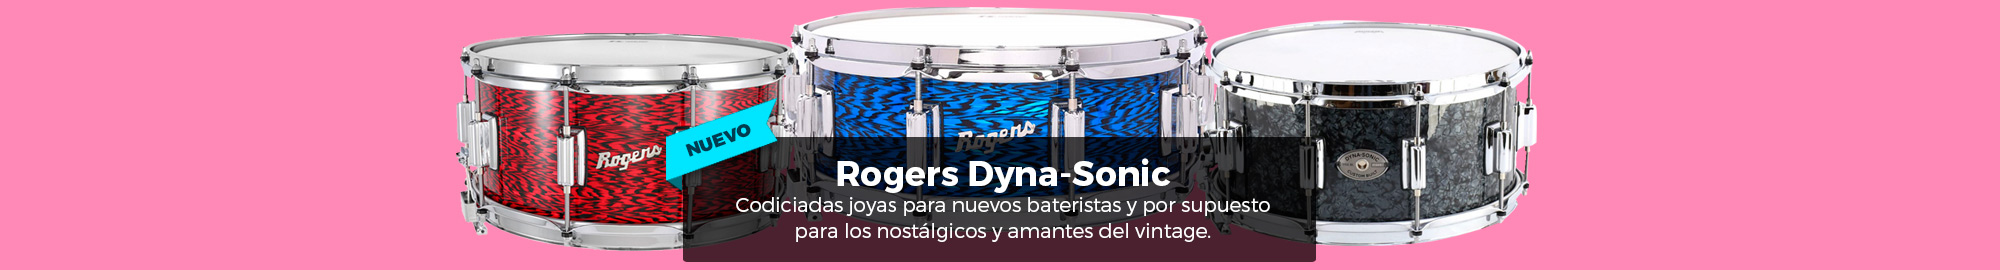 Rogers Dyna-Sonic